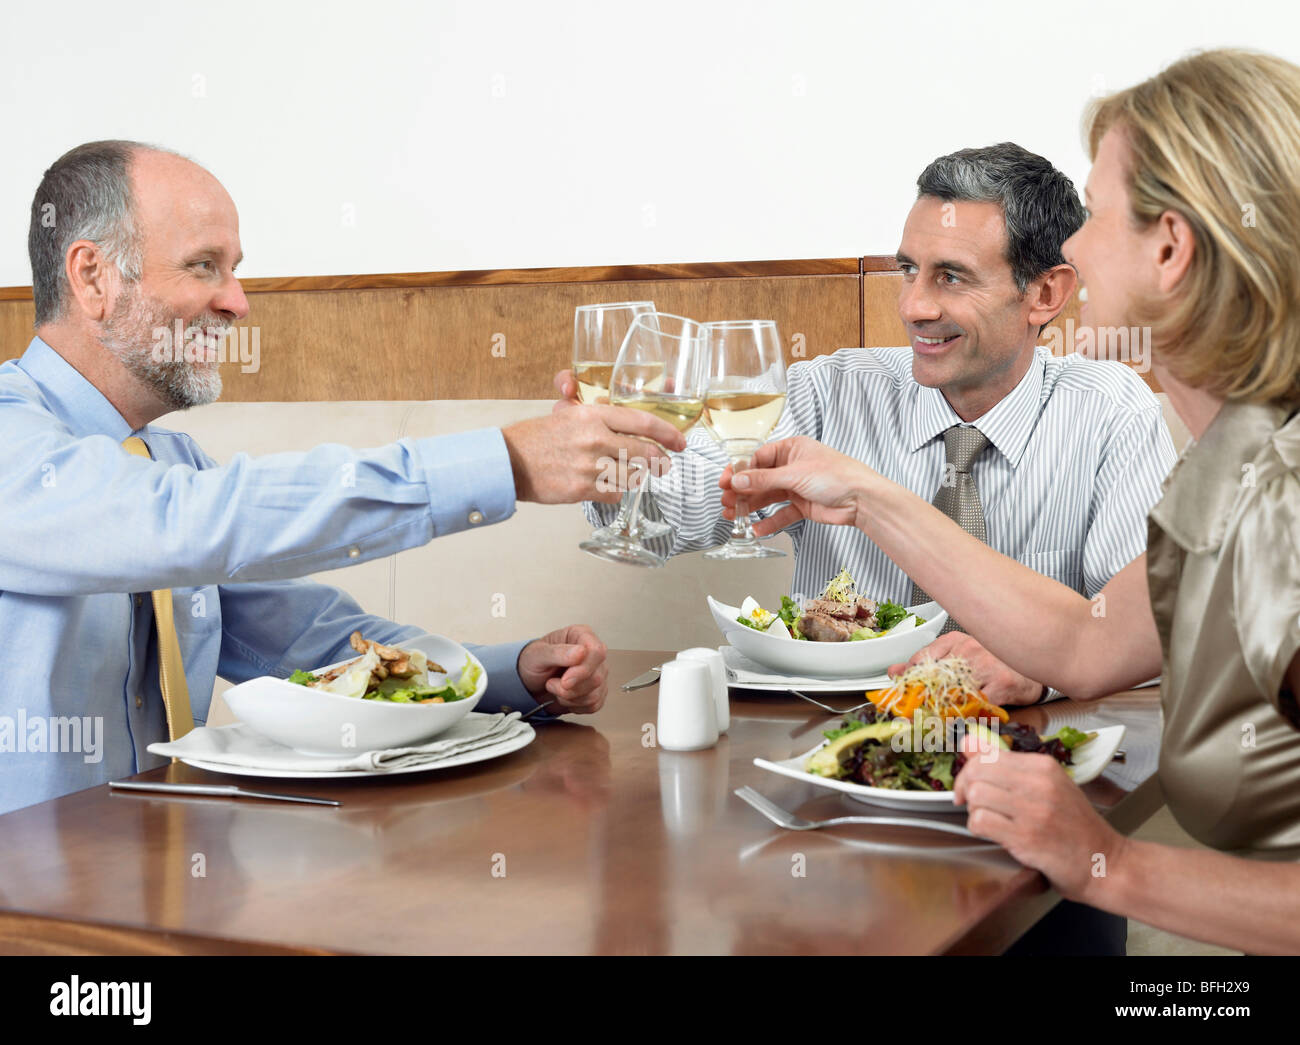 Businesspeople toasting drinks in restaurant - Stock Image